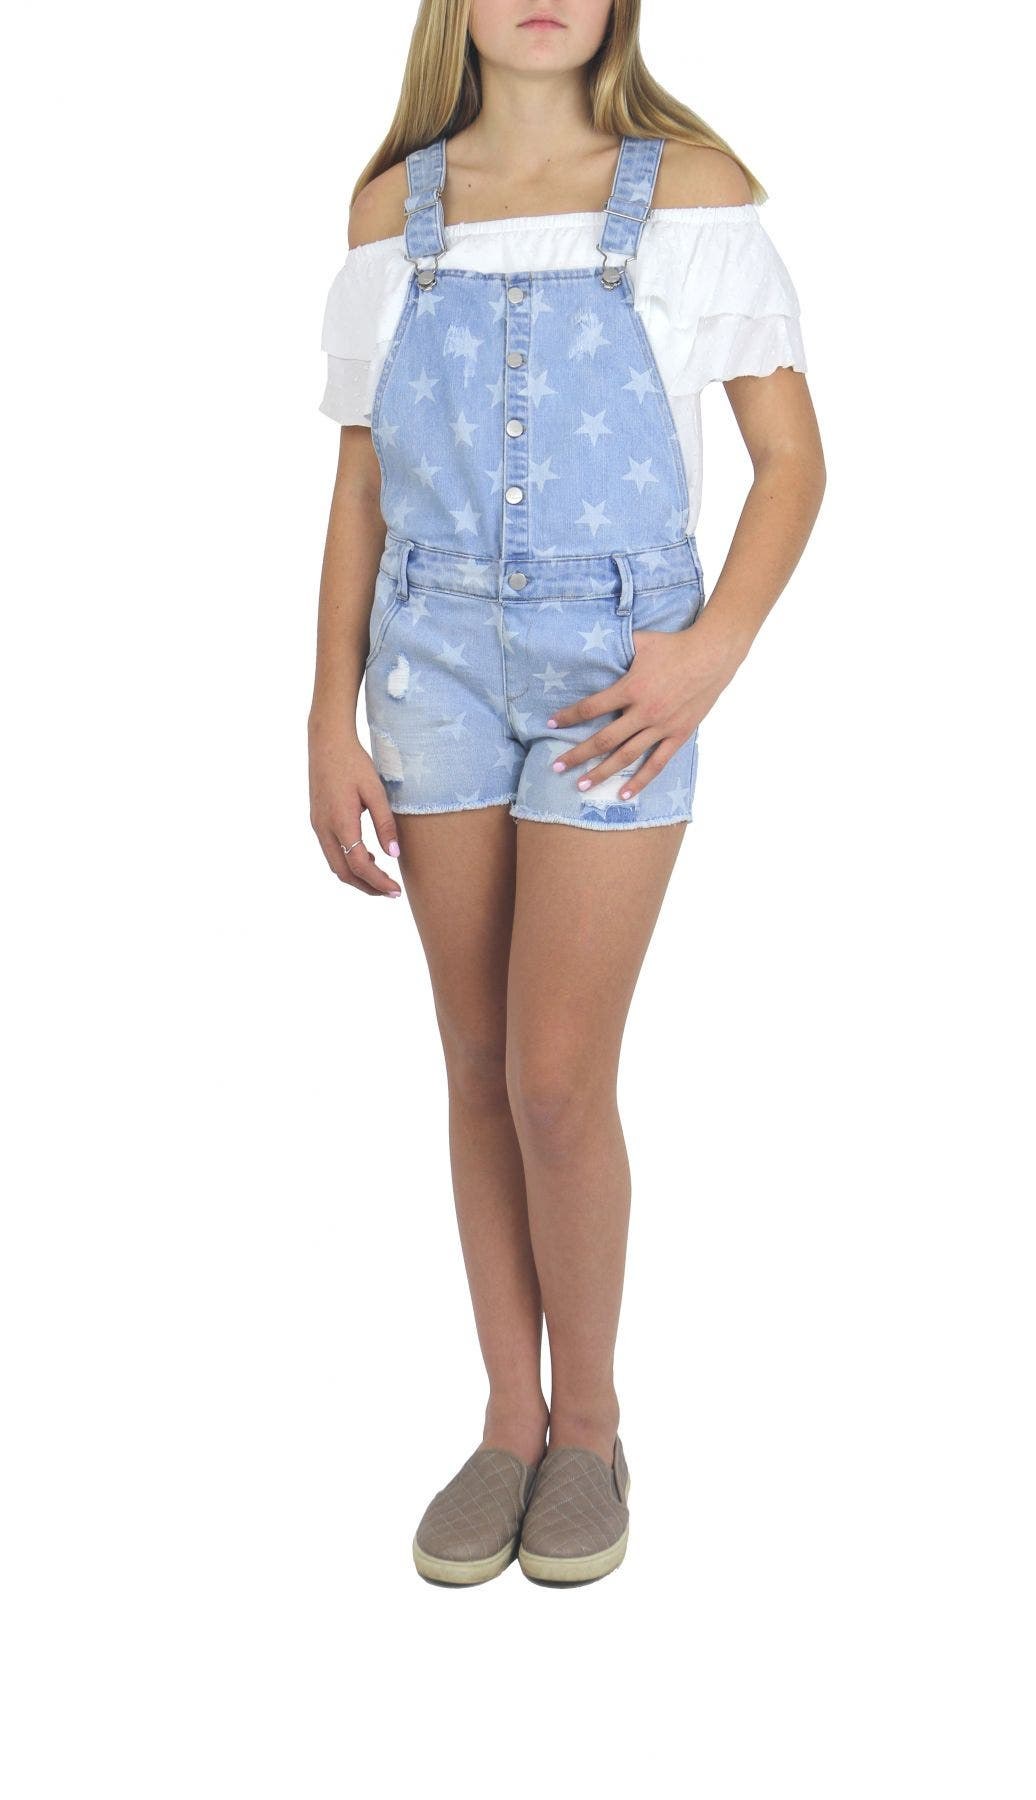 Tractr Girls Star Print Overall 4-6x